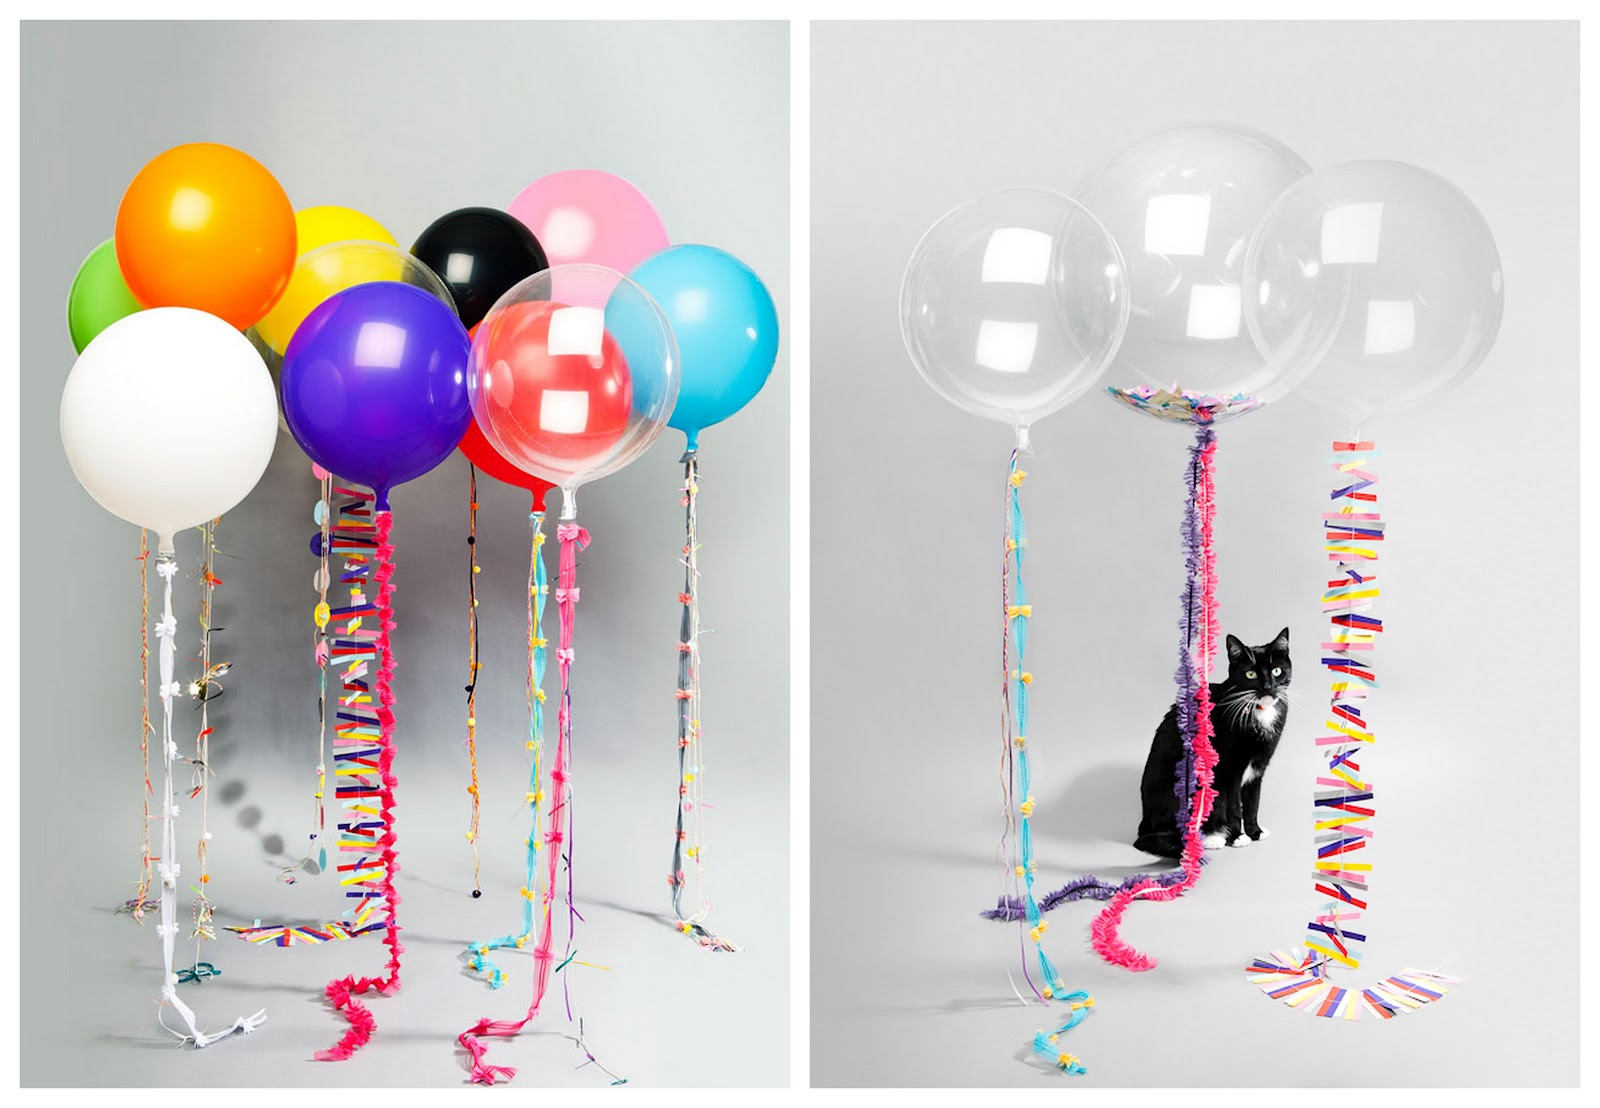 Wedding decorations diy balloons beautiful wedding cake table wedding decorations diy balloons wedding balloons bonbonballoons inspiration before the big day junglespirit Images